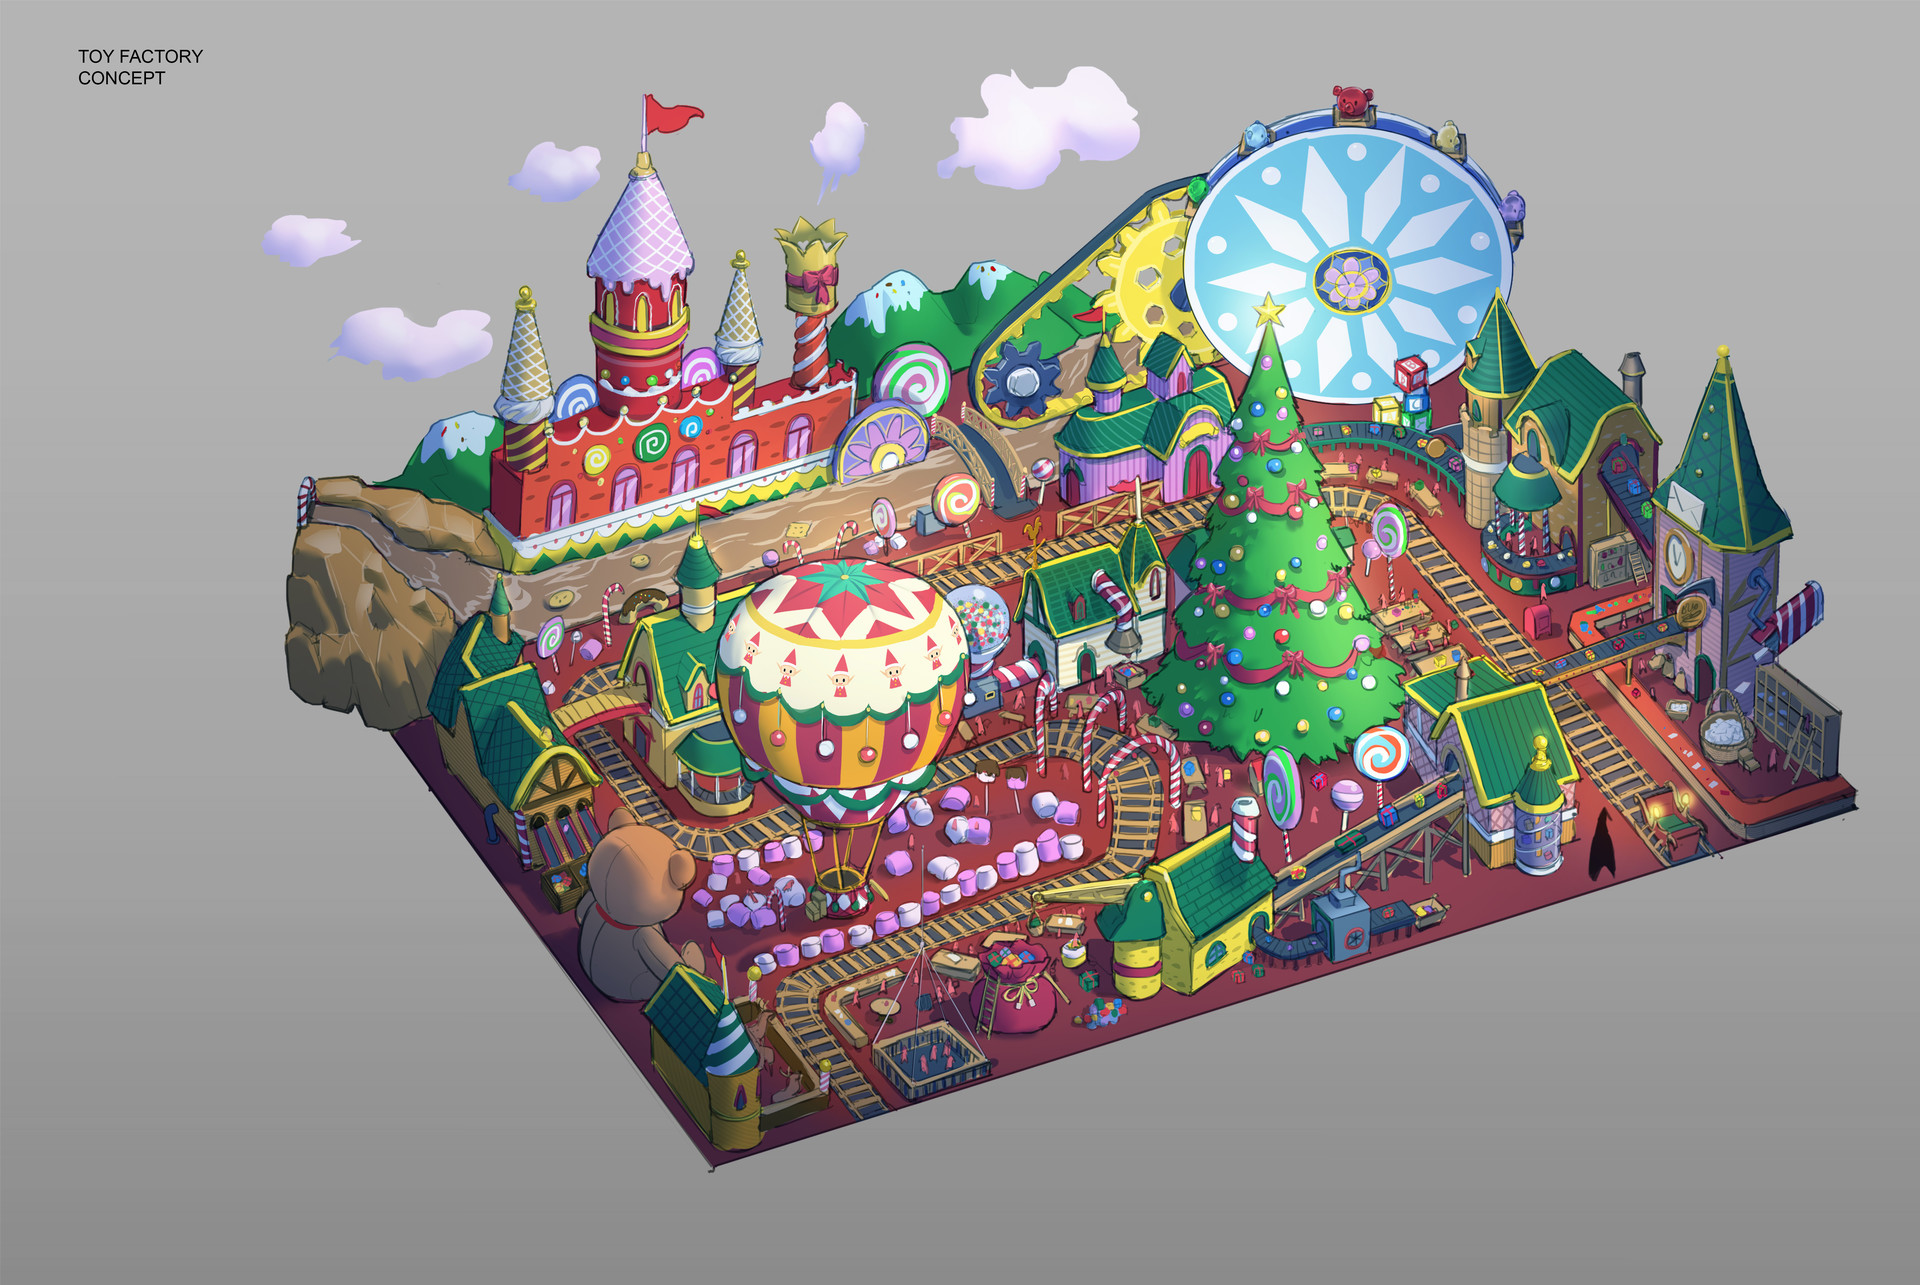 Tokkun studio 180124 factory isometric final 11b